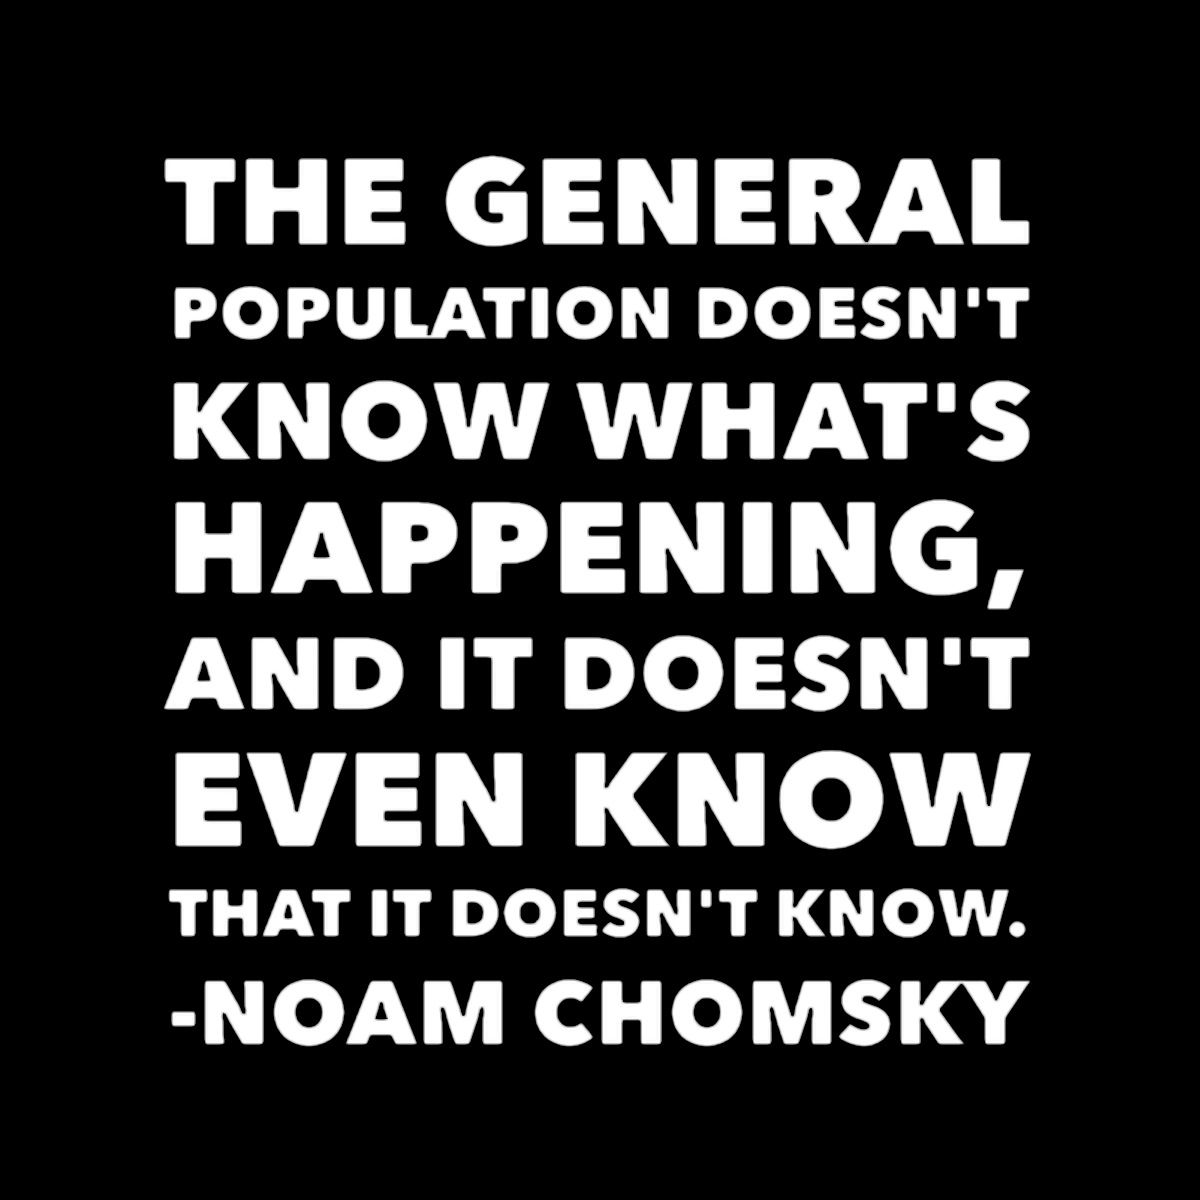 The General Quote Simple The General Population Doesn't Know What's Happening And It Doesn